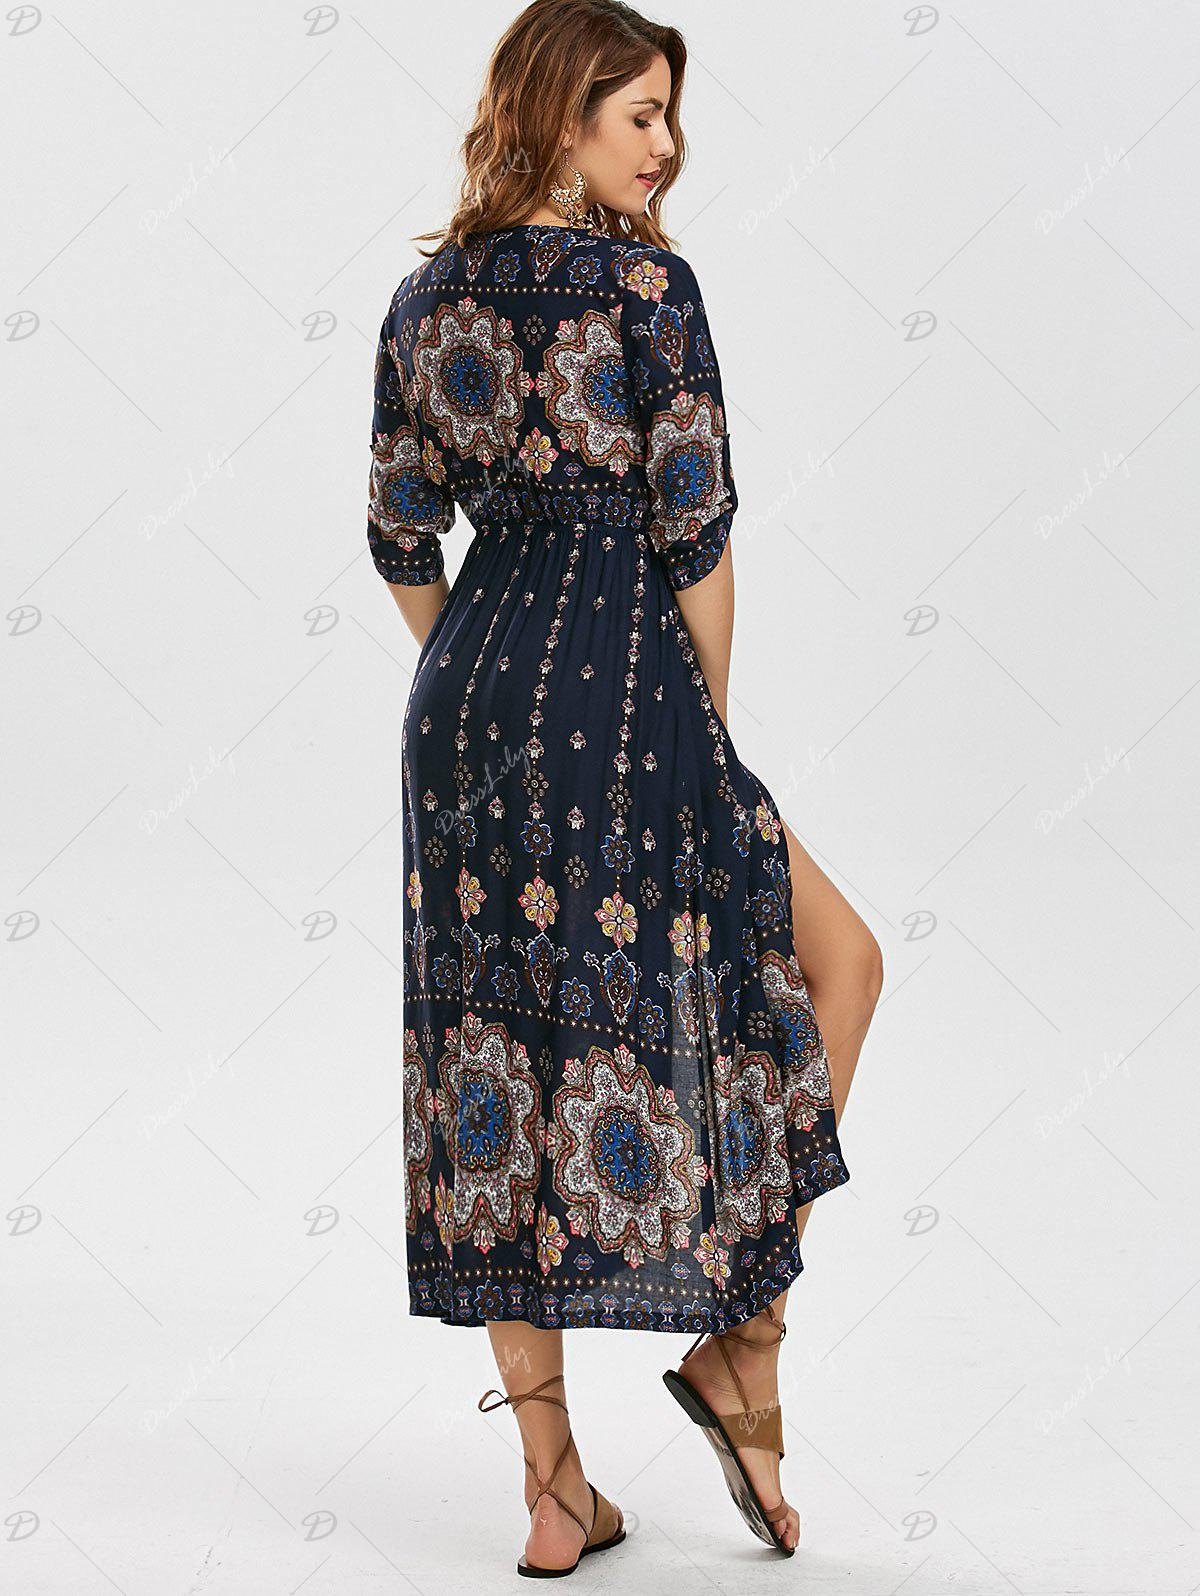 Bohemian Tribal Print High Split Dress - COLORMIX XL